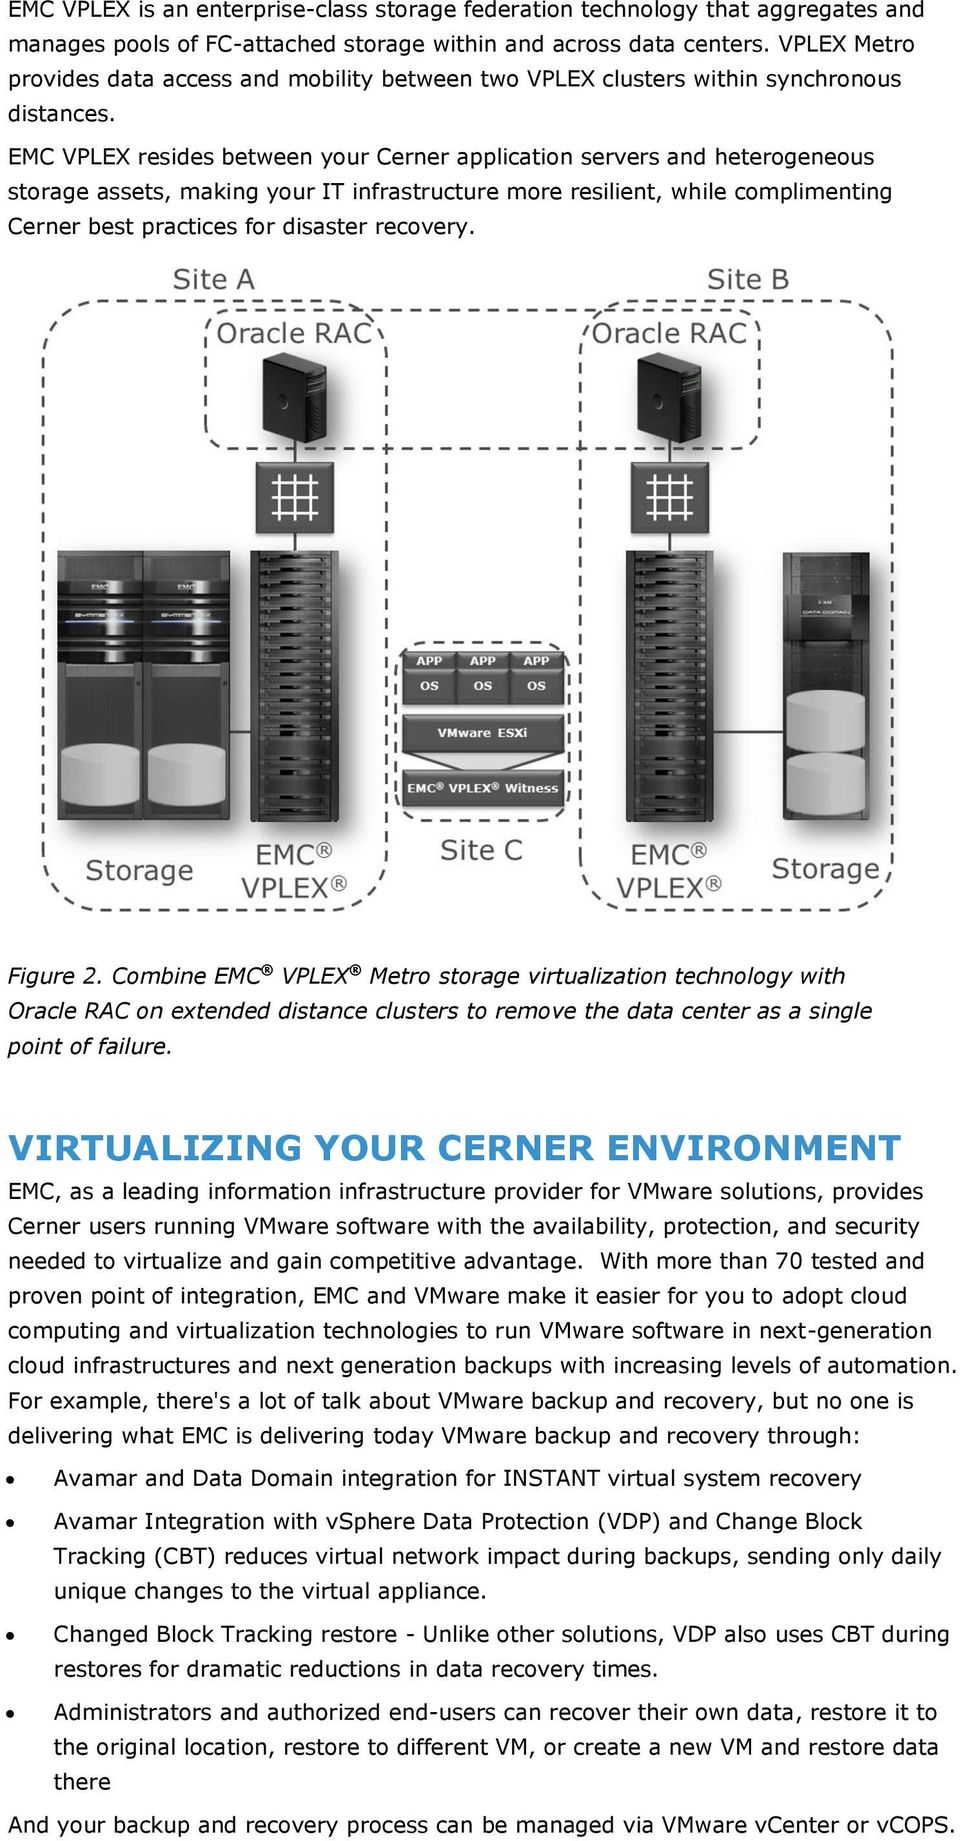 EMC VPLEX resides between your Cerner application servers and heterogeneous storage assets, making your IT infrastructure more resilient, while complimenting Cerner best practices for disaster